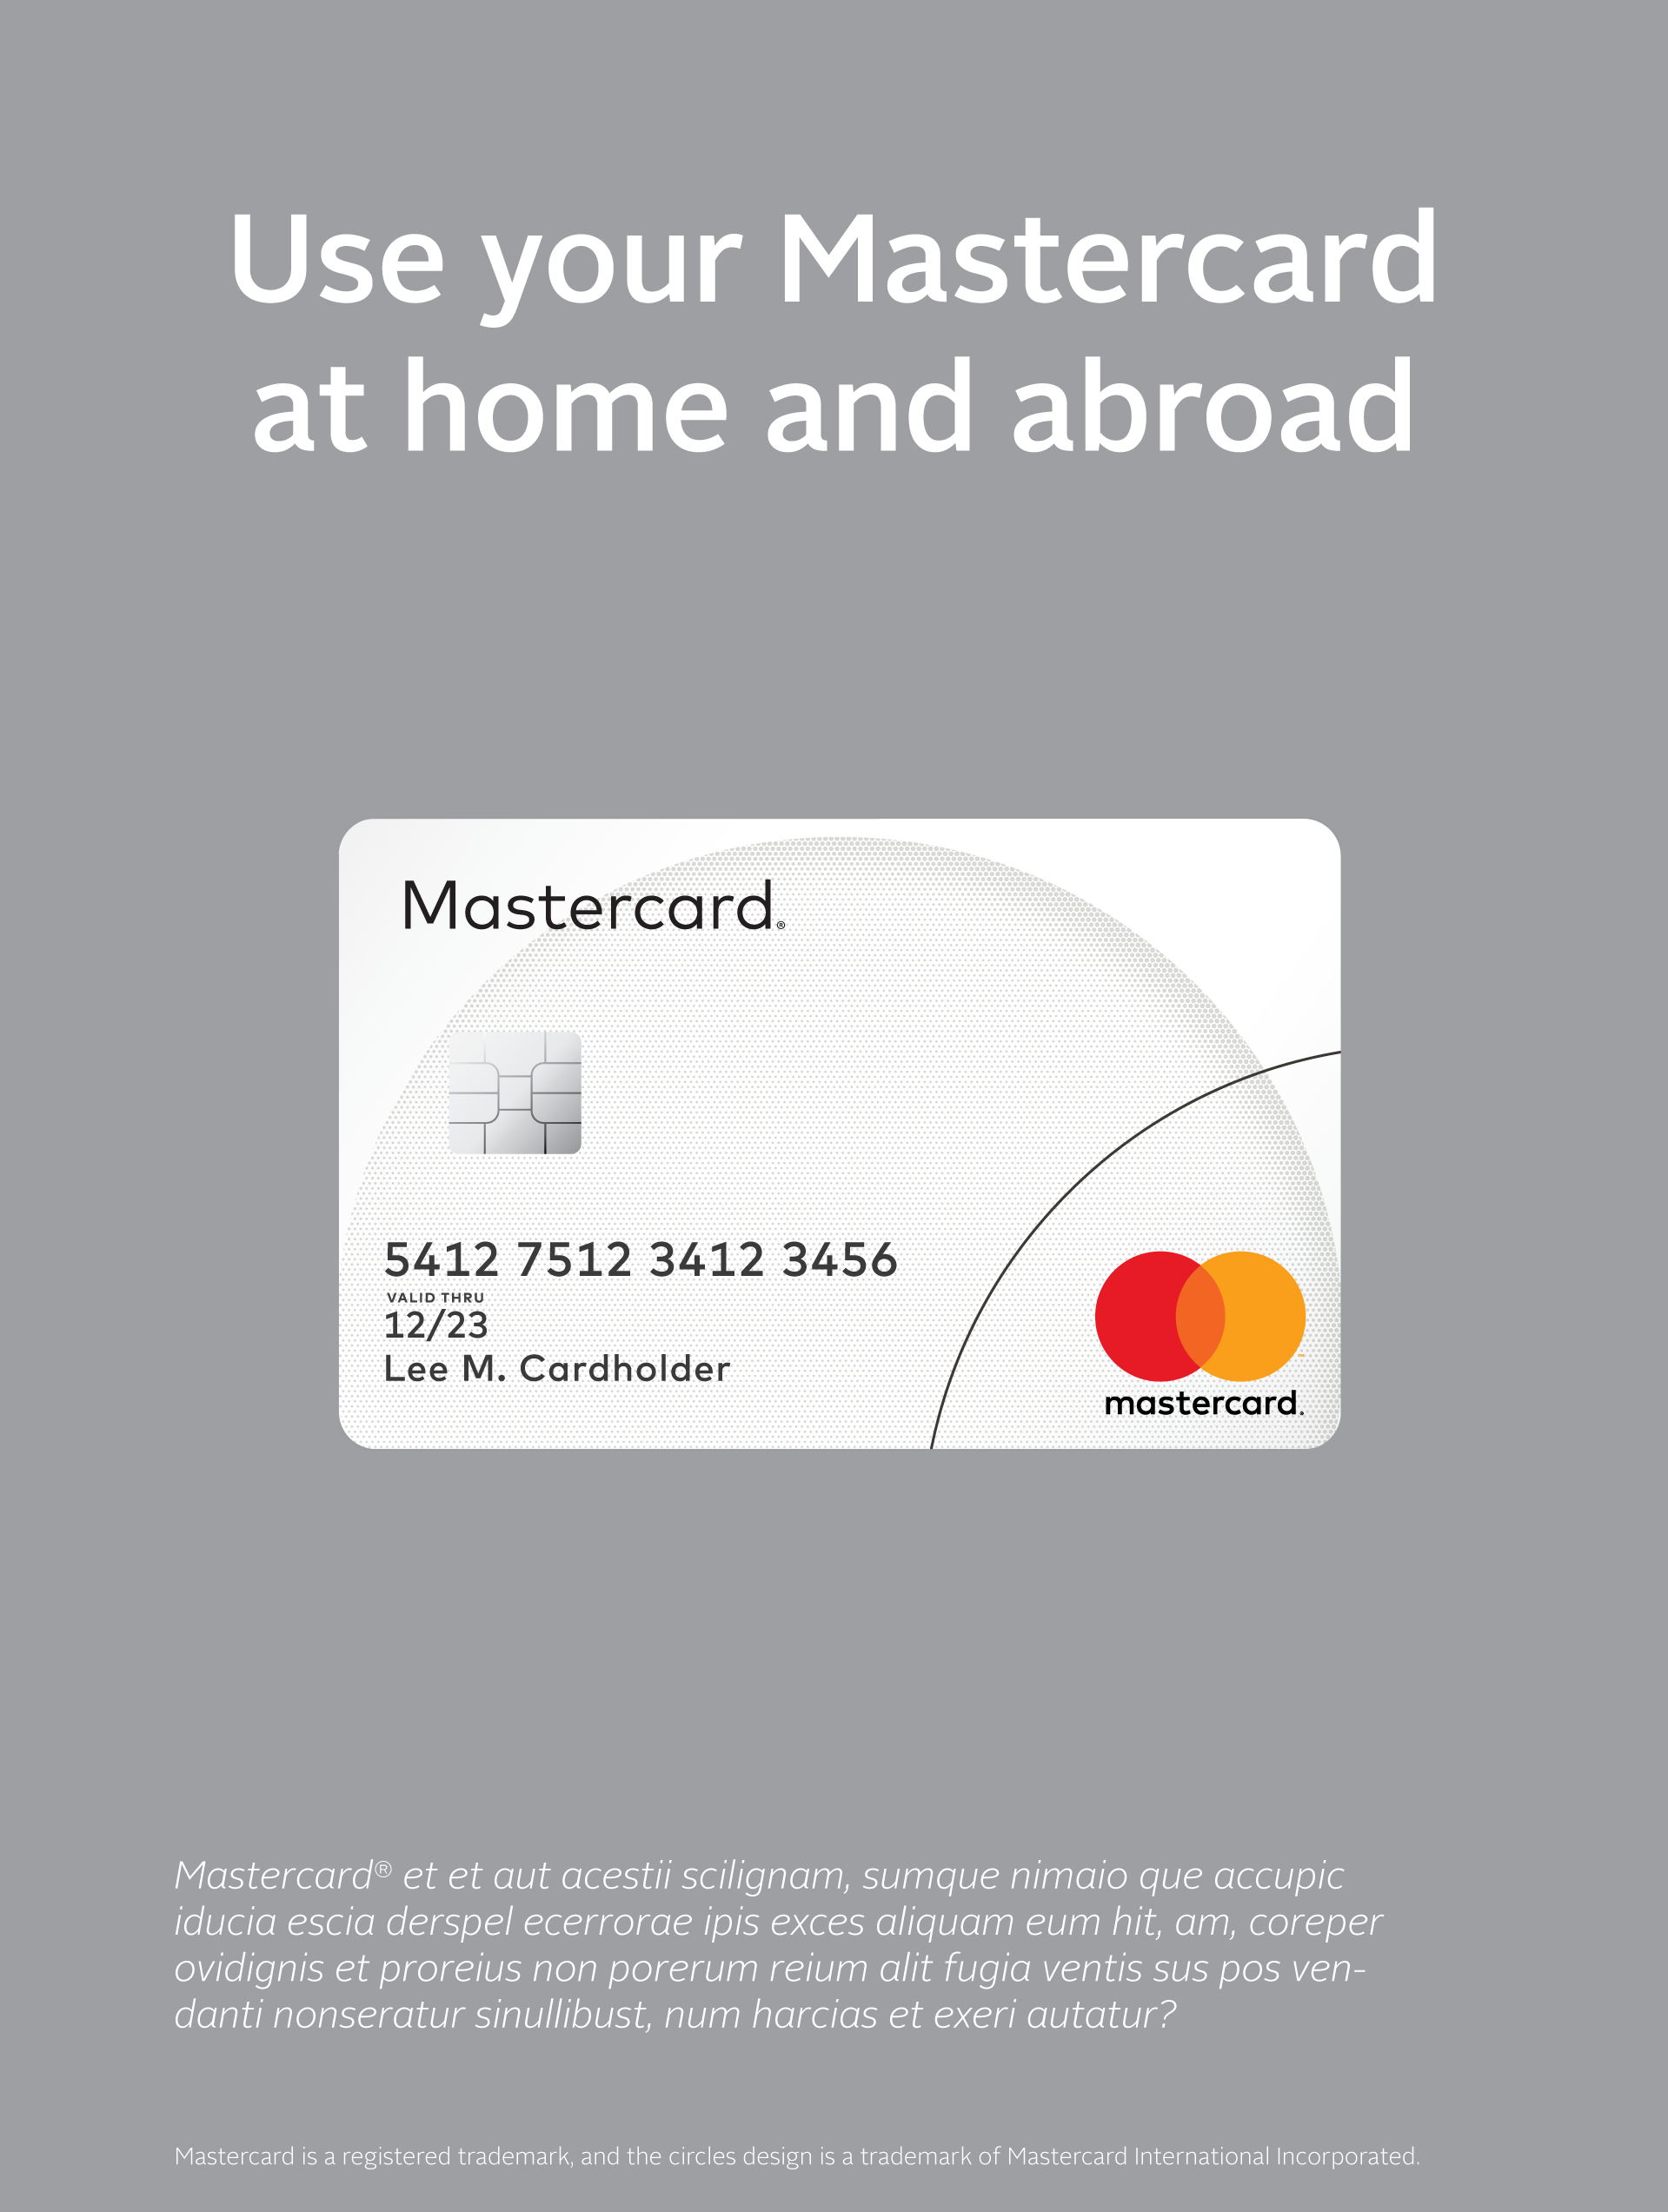 ... of using the Mastercard logo on cards in a marketing communication